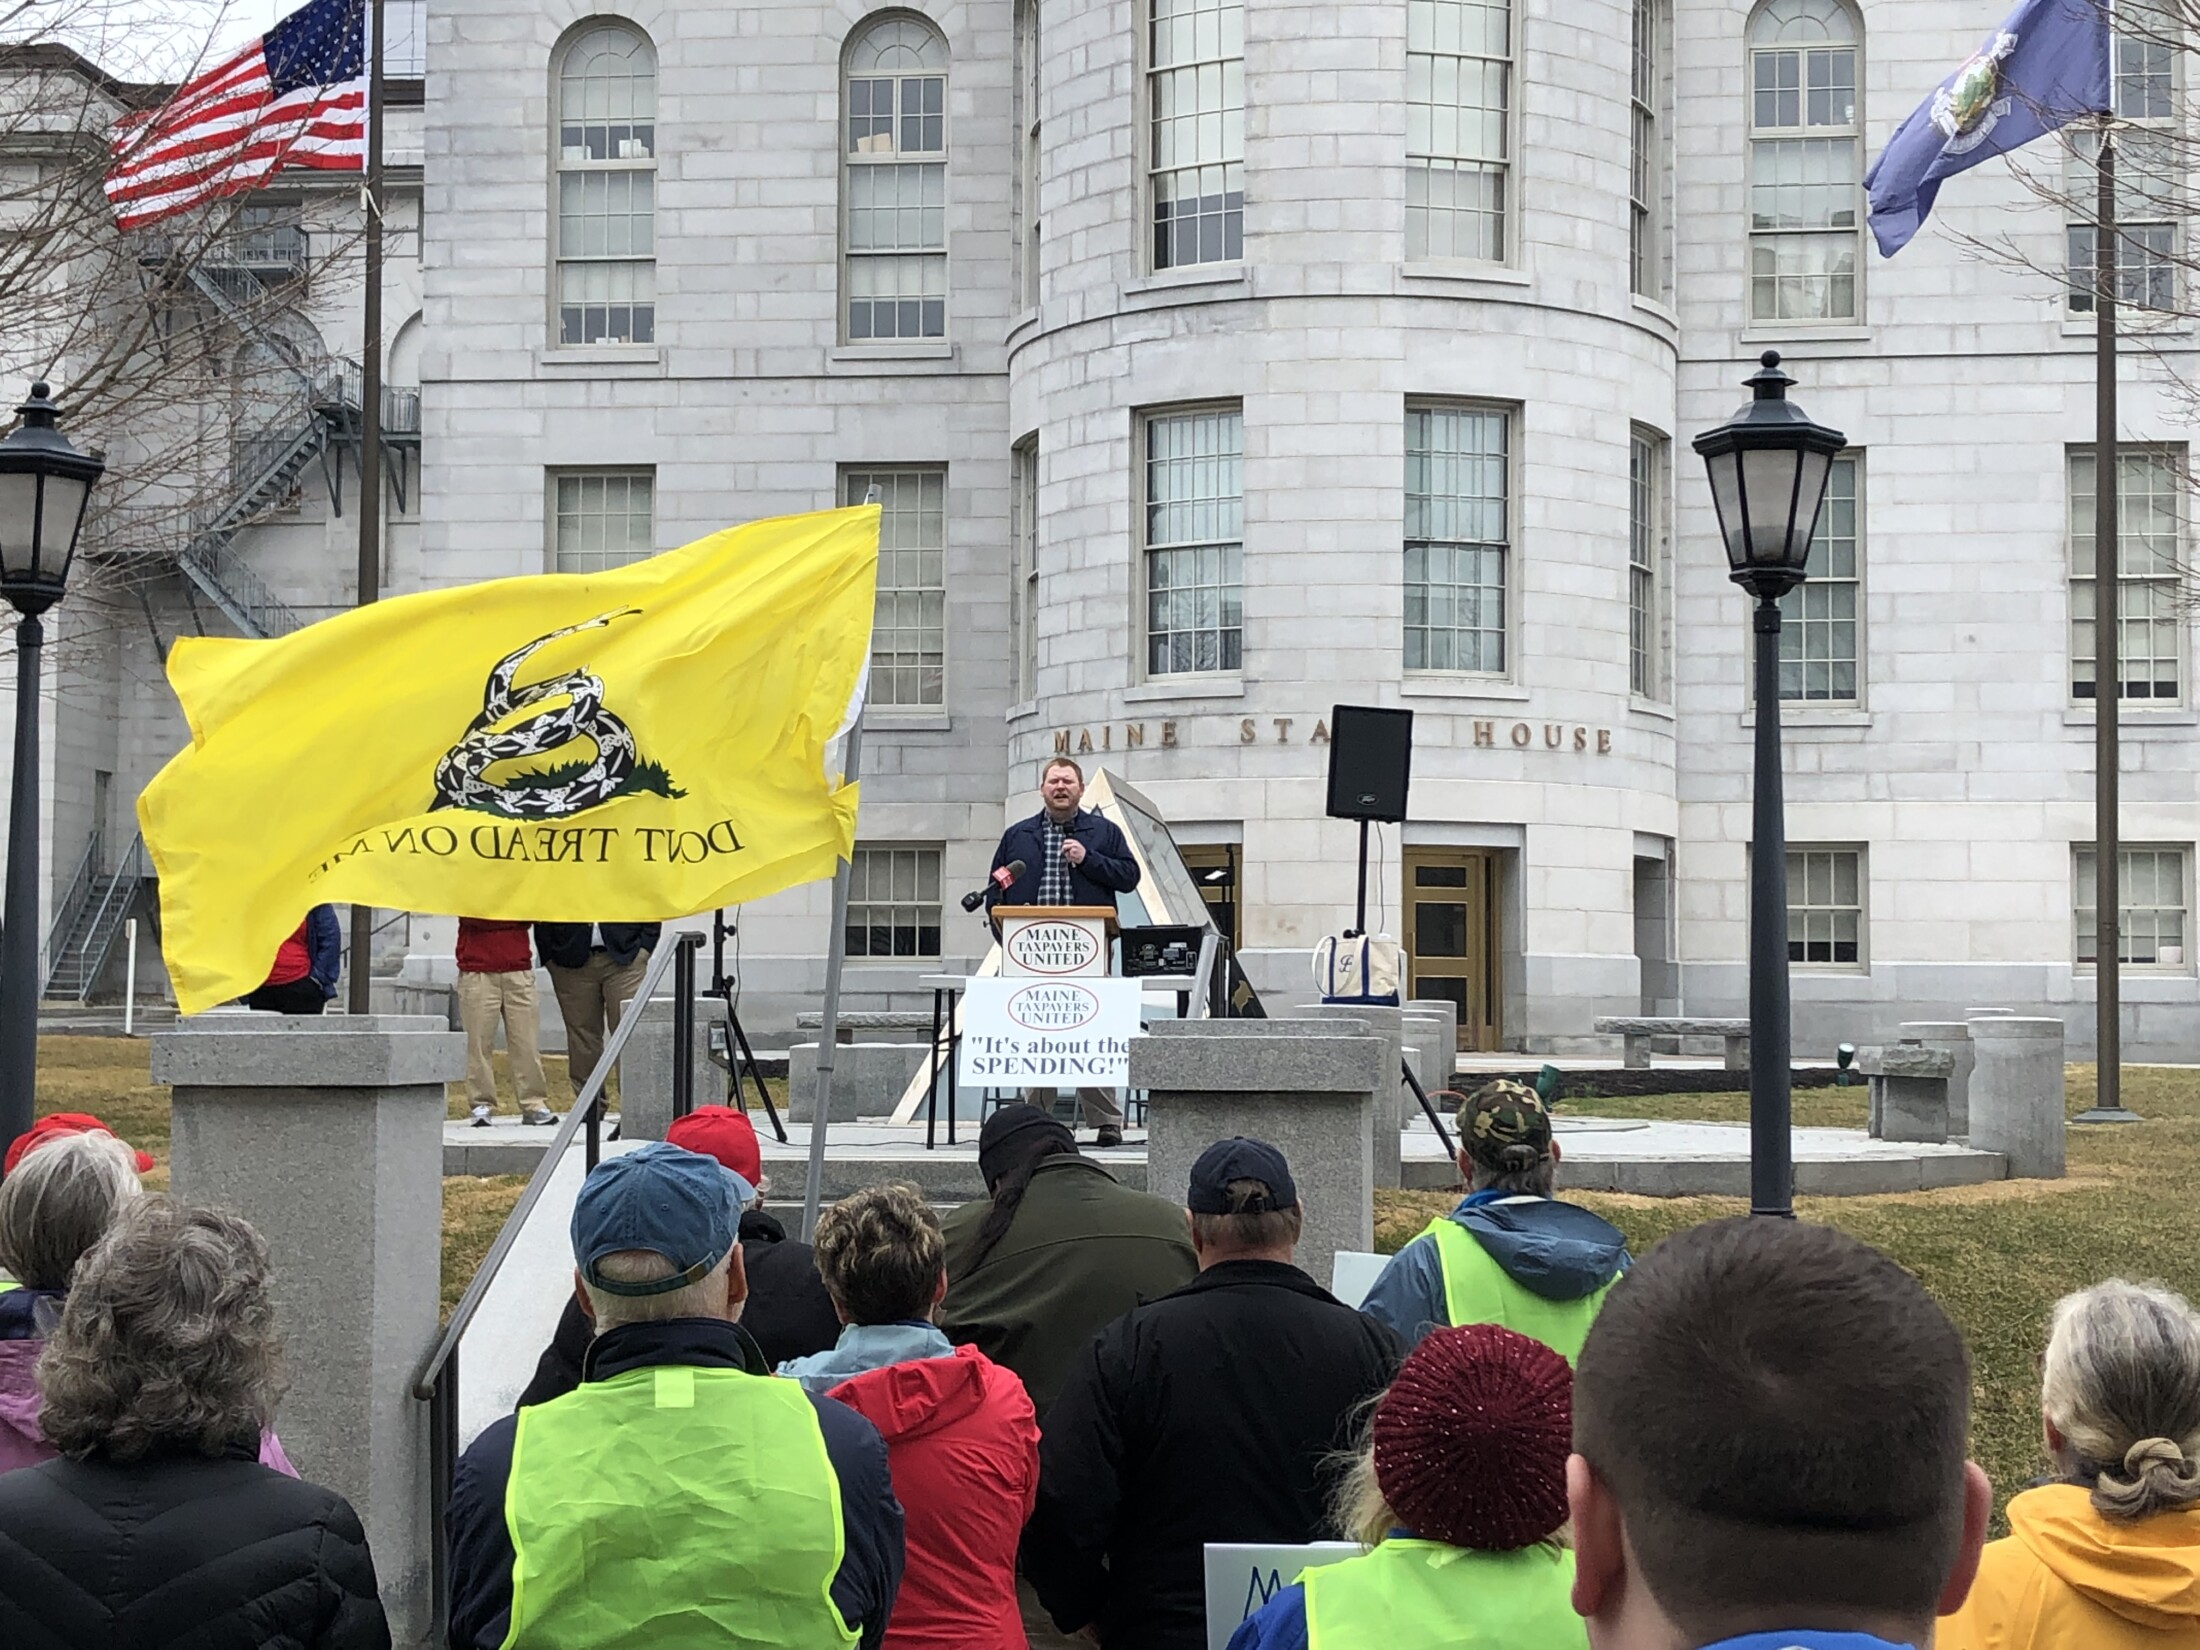 Jacob Posik, communications director for the Maine Heritage Policy Center, a right-leaning think tank that advocates for tax cuts, speaks to a crowd of about 60 at a rally against taxes at the State House on Monday – the day state and federal income taxes were due in most of the U.S.